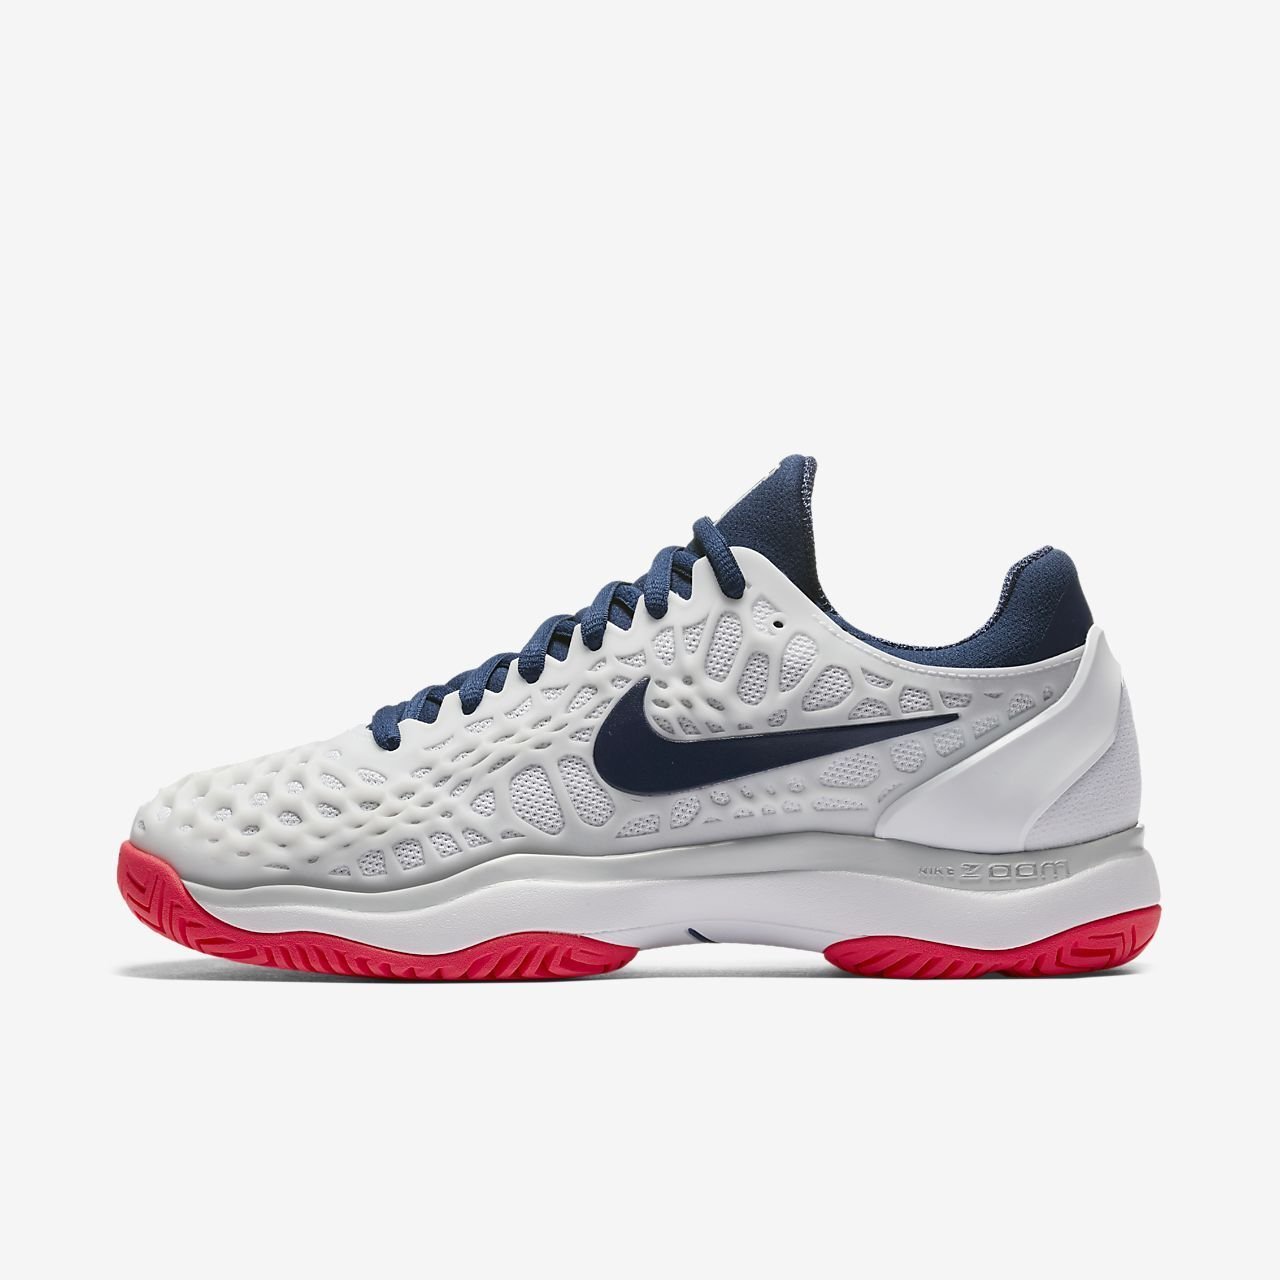 Nike Damenschuhe Air Zoom Cage 3 HC  - UK 6